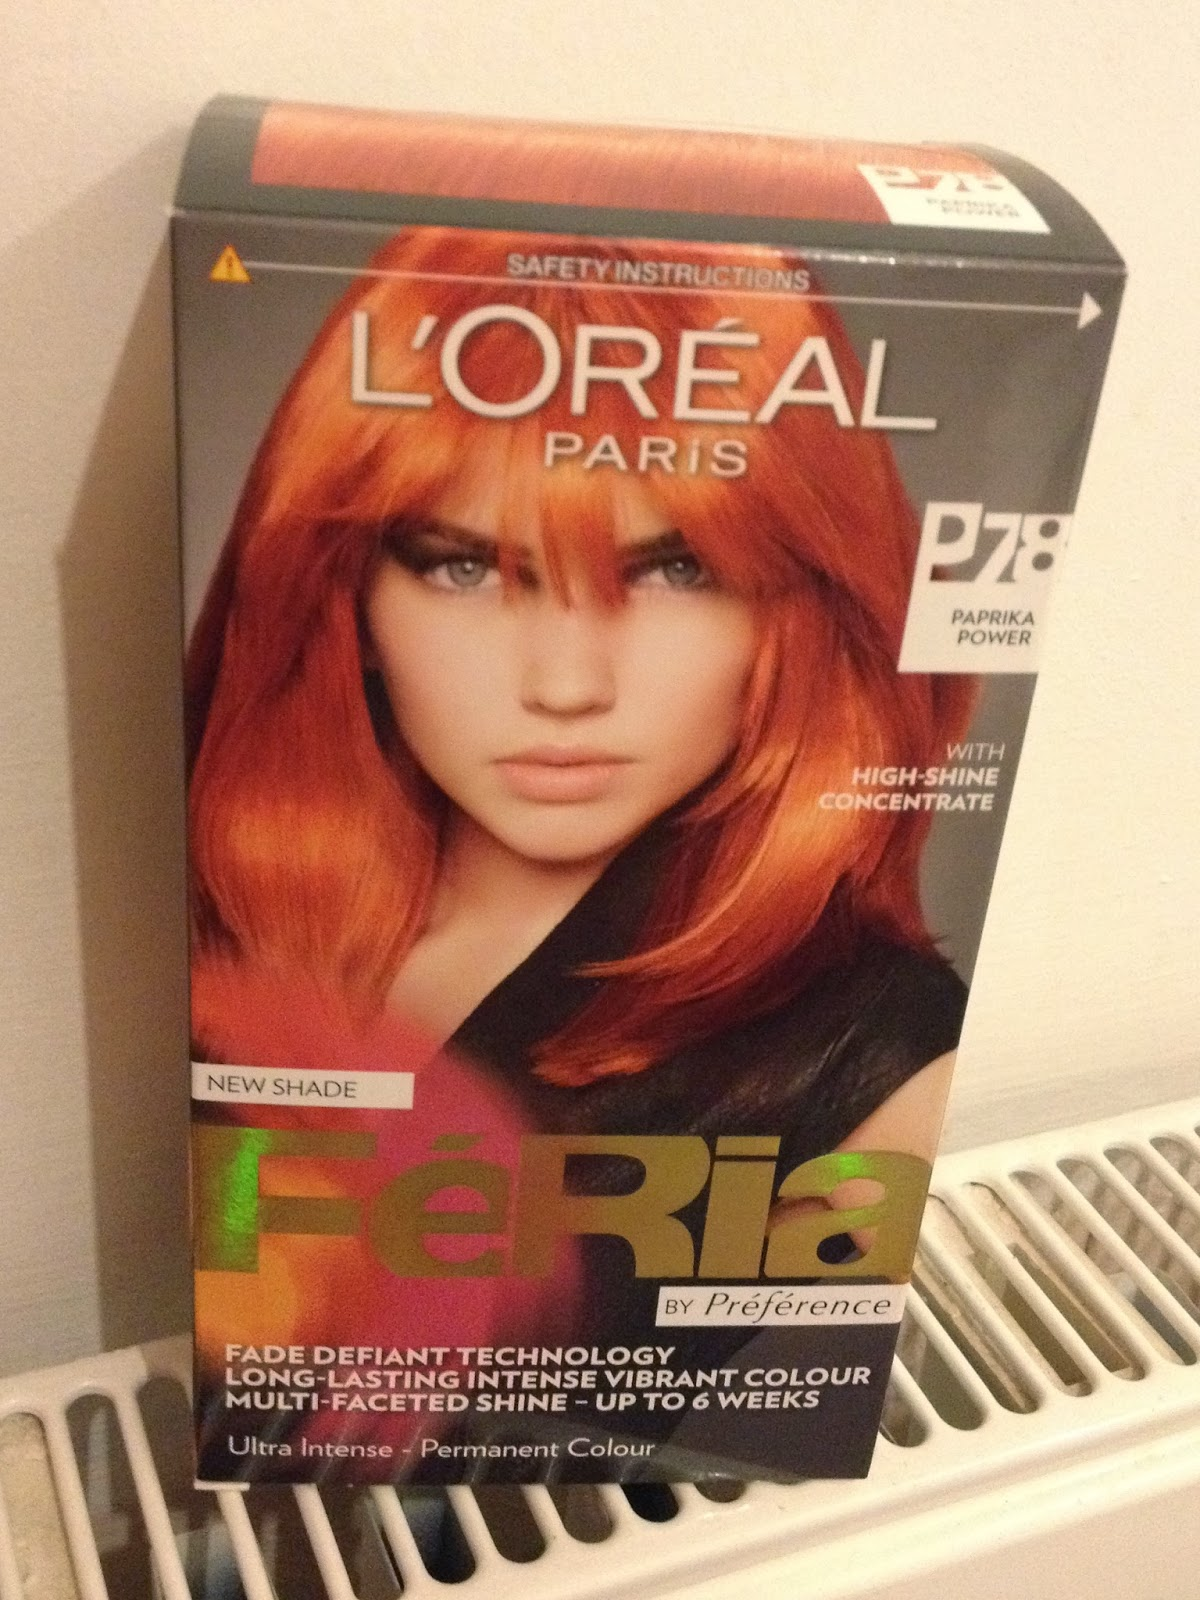 Loreal Feria Hair Color Shades Red The shade is #p78 also known